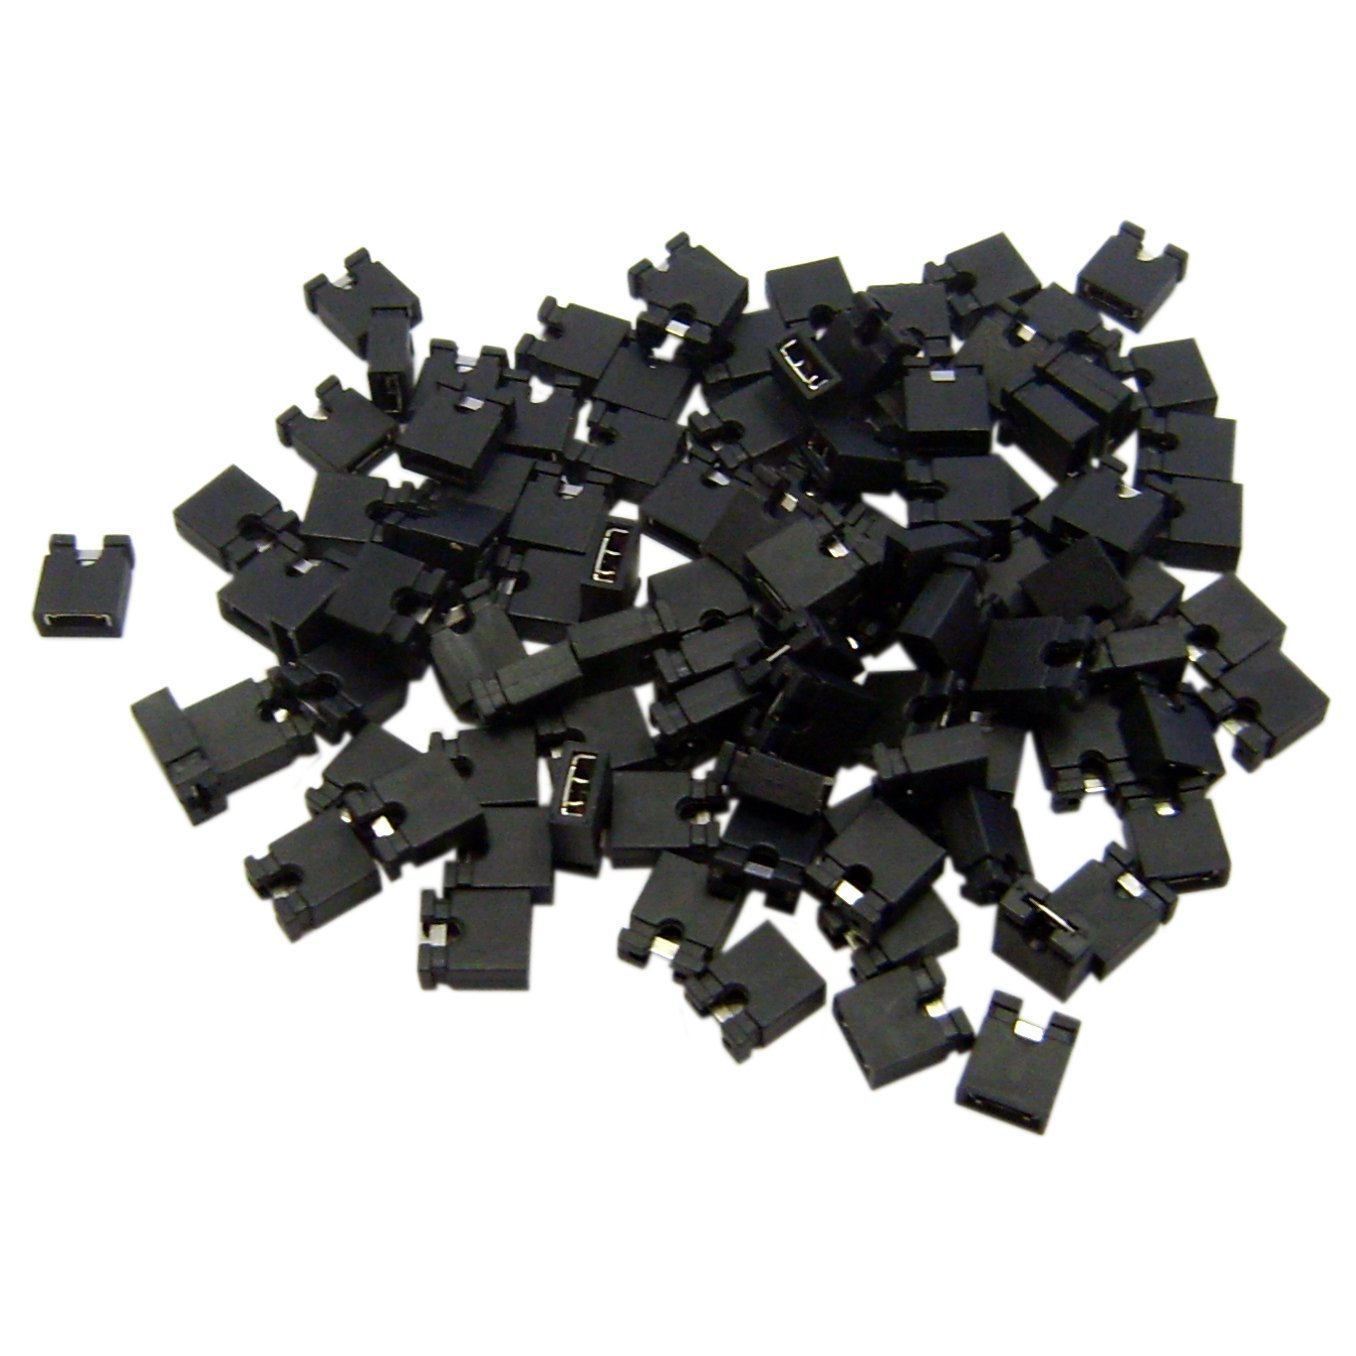 2000pcs Pin Header Jumper blocks Connector 2.54 mm for 3 1/2 Hard Disk Drive, CD/DVD Drive, Motherboard and/or Expansion Card hot sale 1pc hard disk drive mounting bracket kit for playstation 3 ps3 slim cech 2000 fw1s for ps3 slim hard drive bracket